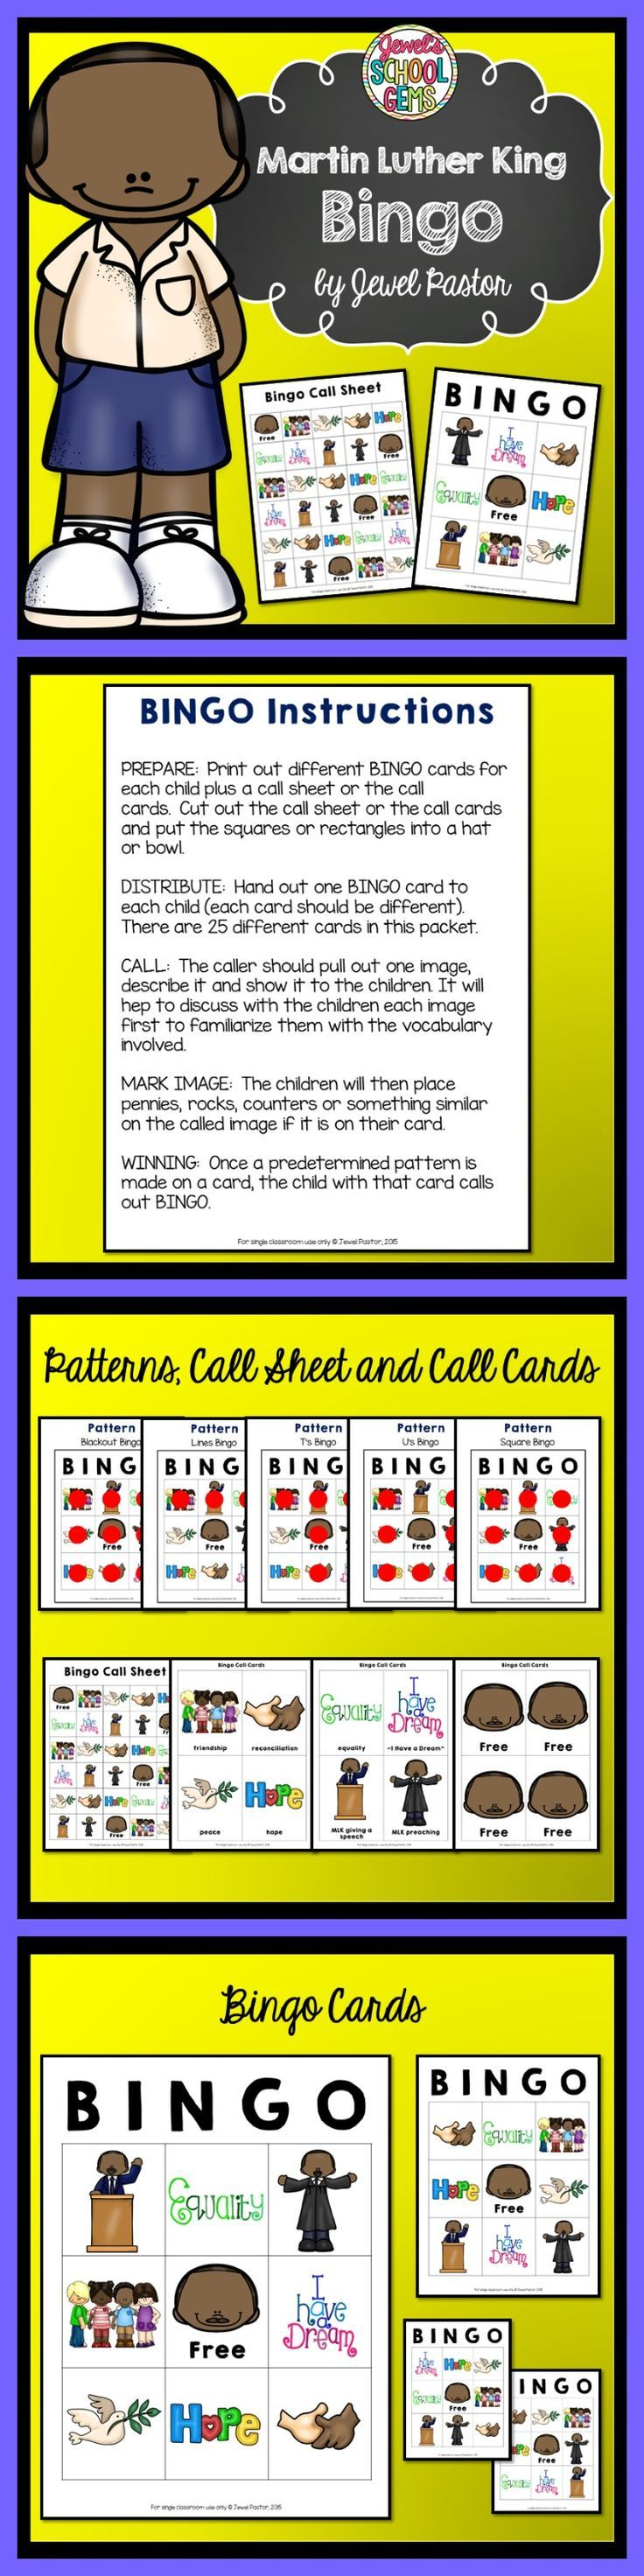 Martin Luther King : Martin Luther King Bingo Packet  MARTIN LUTHER KING JR.   In search of fun Martin Luther King Day activities? Engage your students this Martin Luther King Day with this fun Martin Luther King Bingo! This packet contains instructions, patterns, bingo cards, a call sheet and call cards. See the Preview to have an idea of what is inside this Martin Luther King packet.